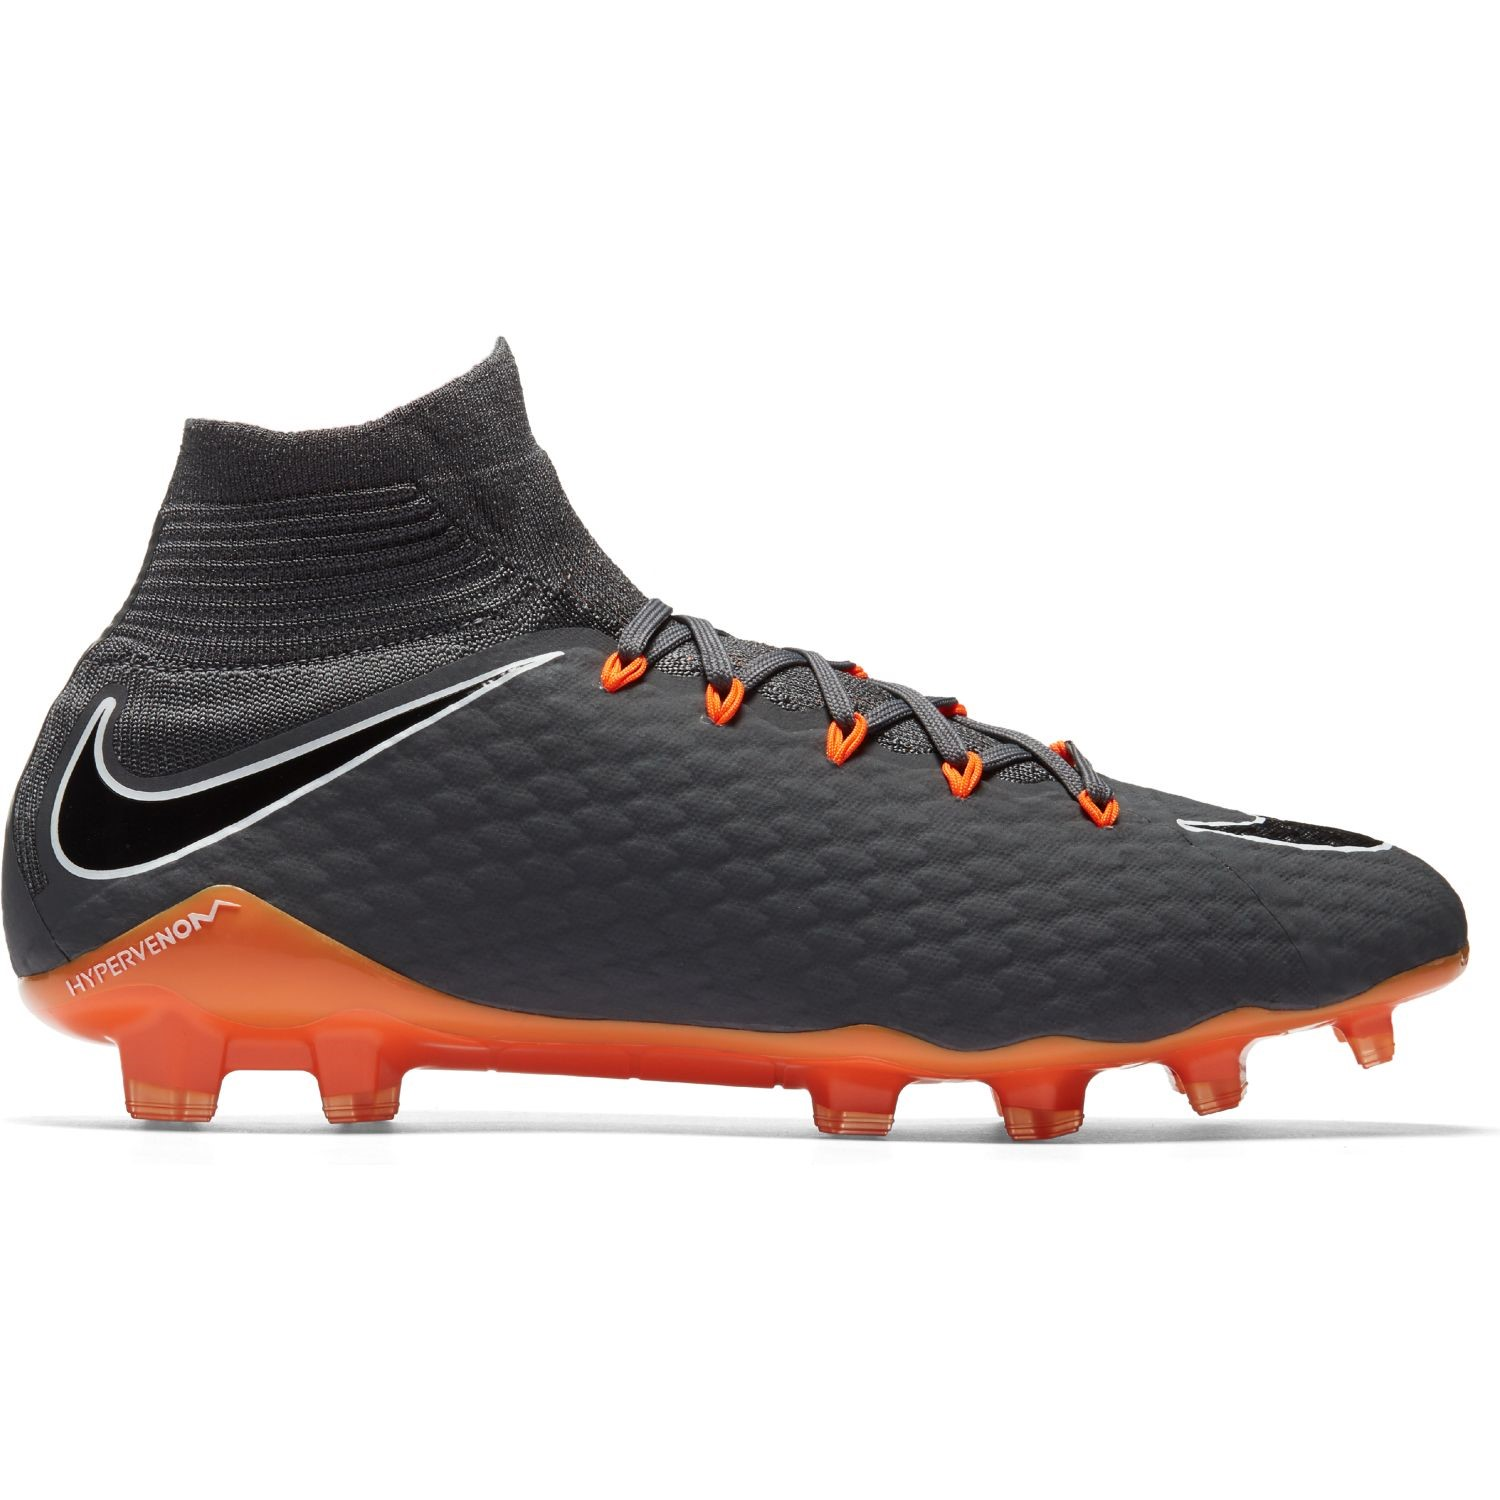 timeless design a30eb 5960b Nike Hypervenom Phantom III Pro DF FG - Mens Football Boots